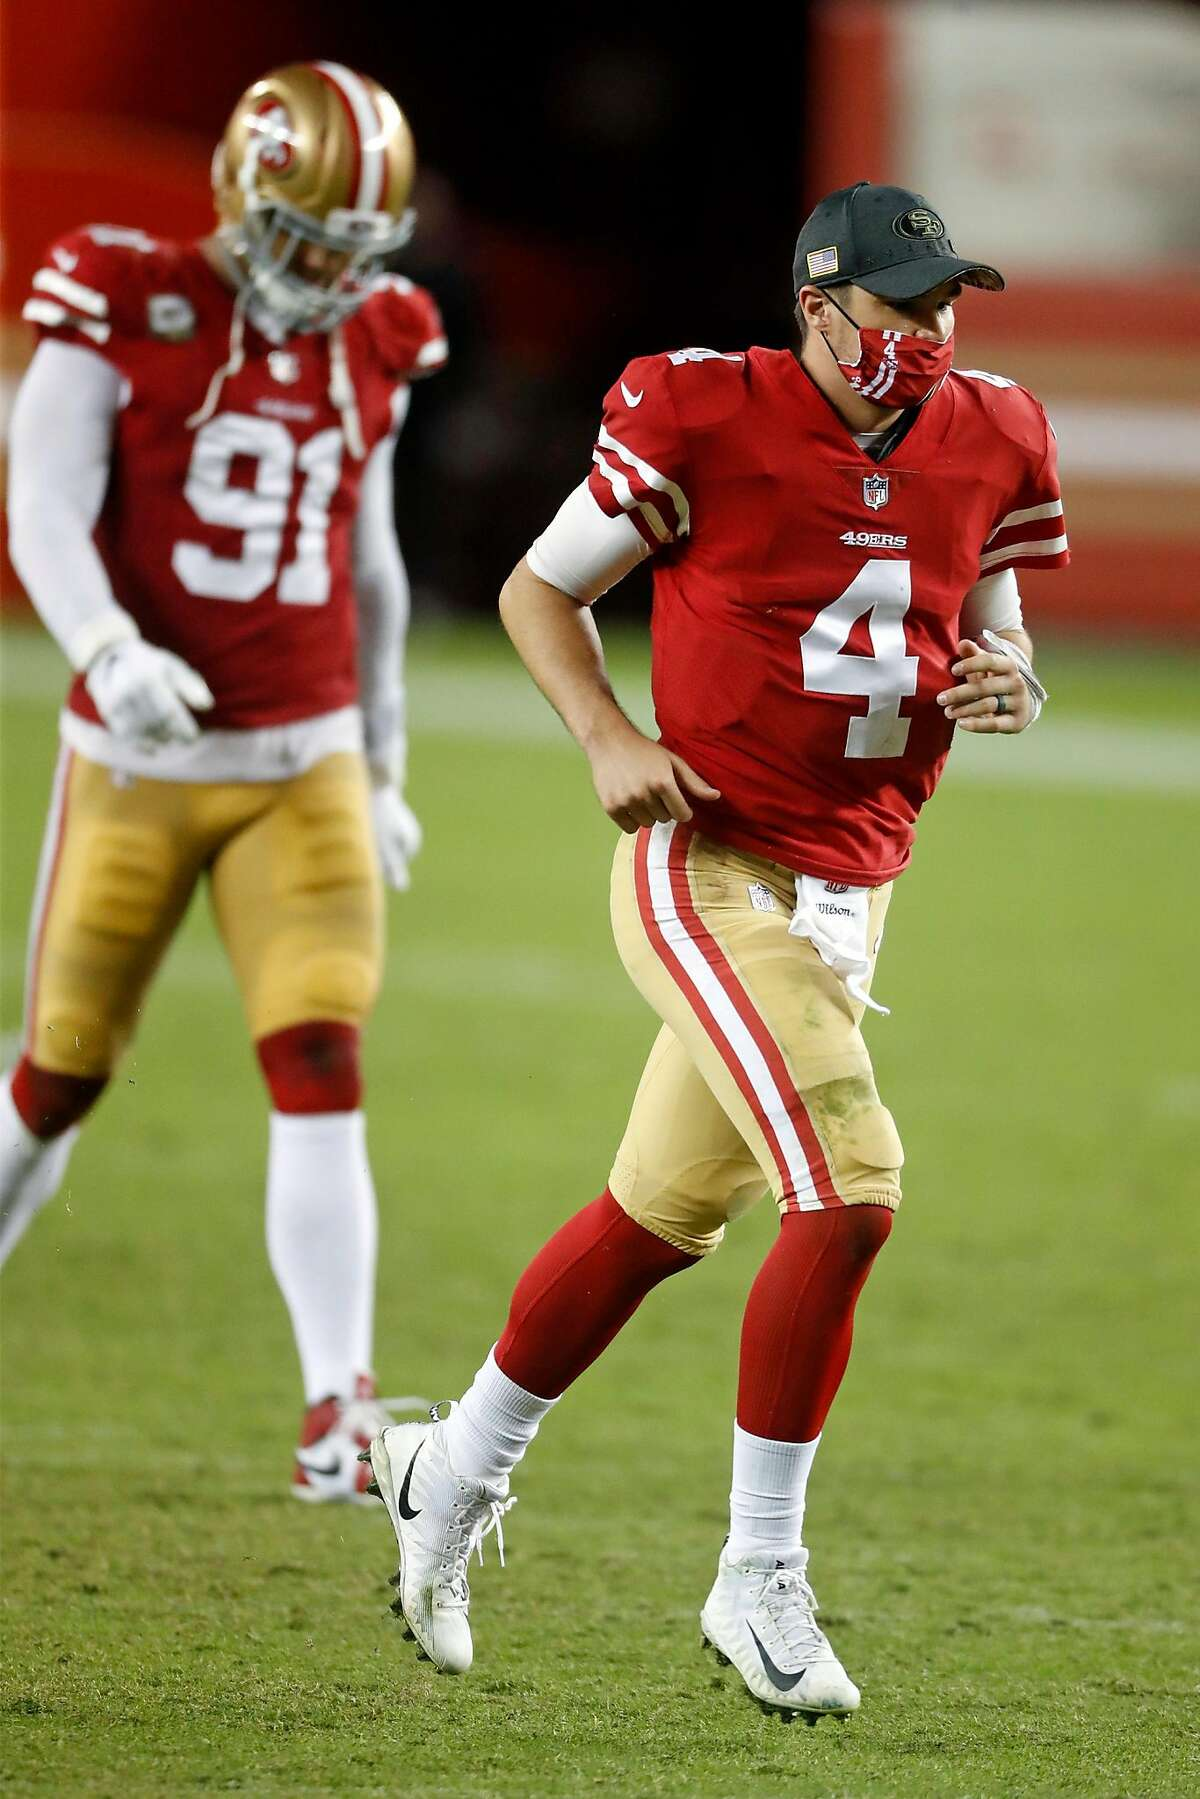 San Francisco 49ers' Nick Mullens and Arik Armstead leave the field after Niners' 34-17 loss to Green Bay Packers in NFL game at Levi's Stadium in Santa Clara, Calif., on Thursday, November 5, 2020.